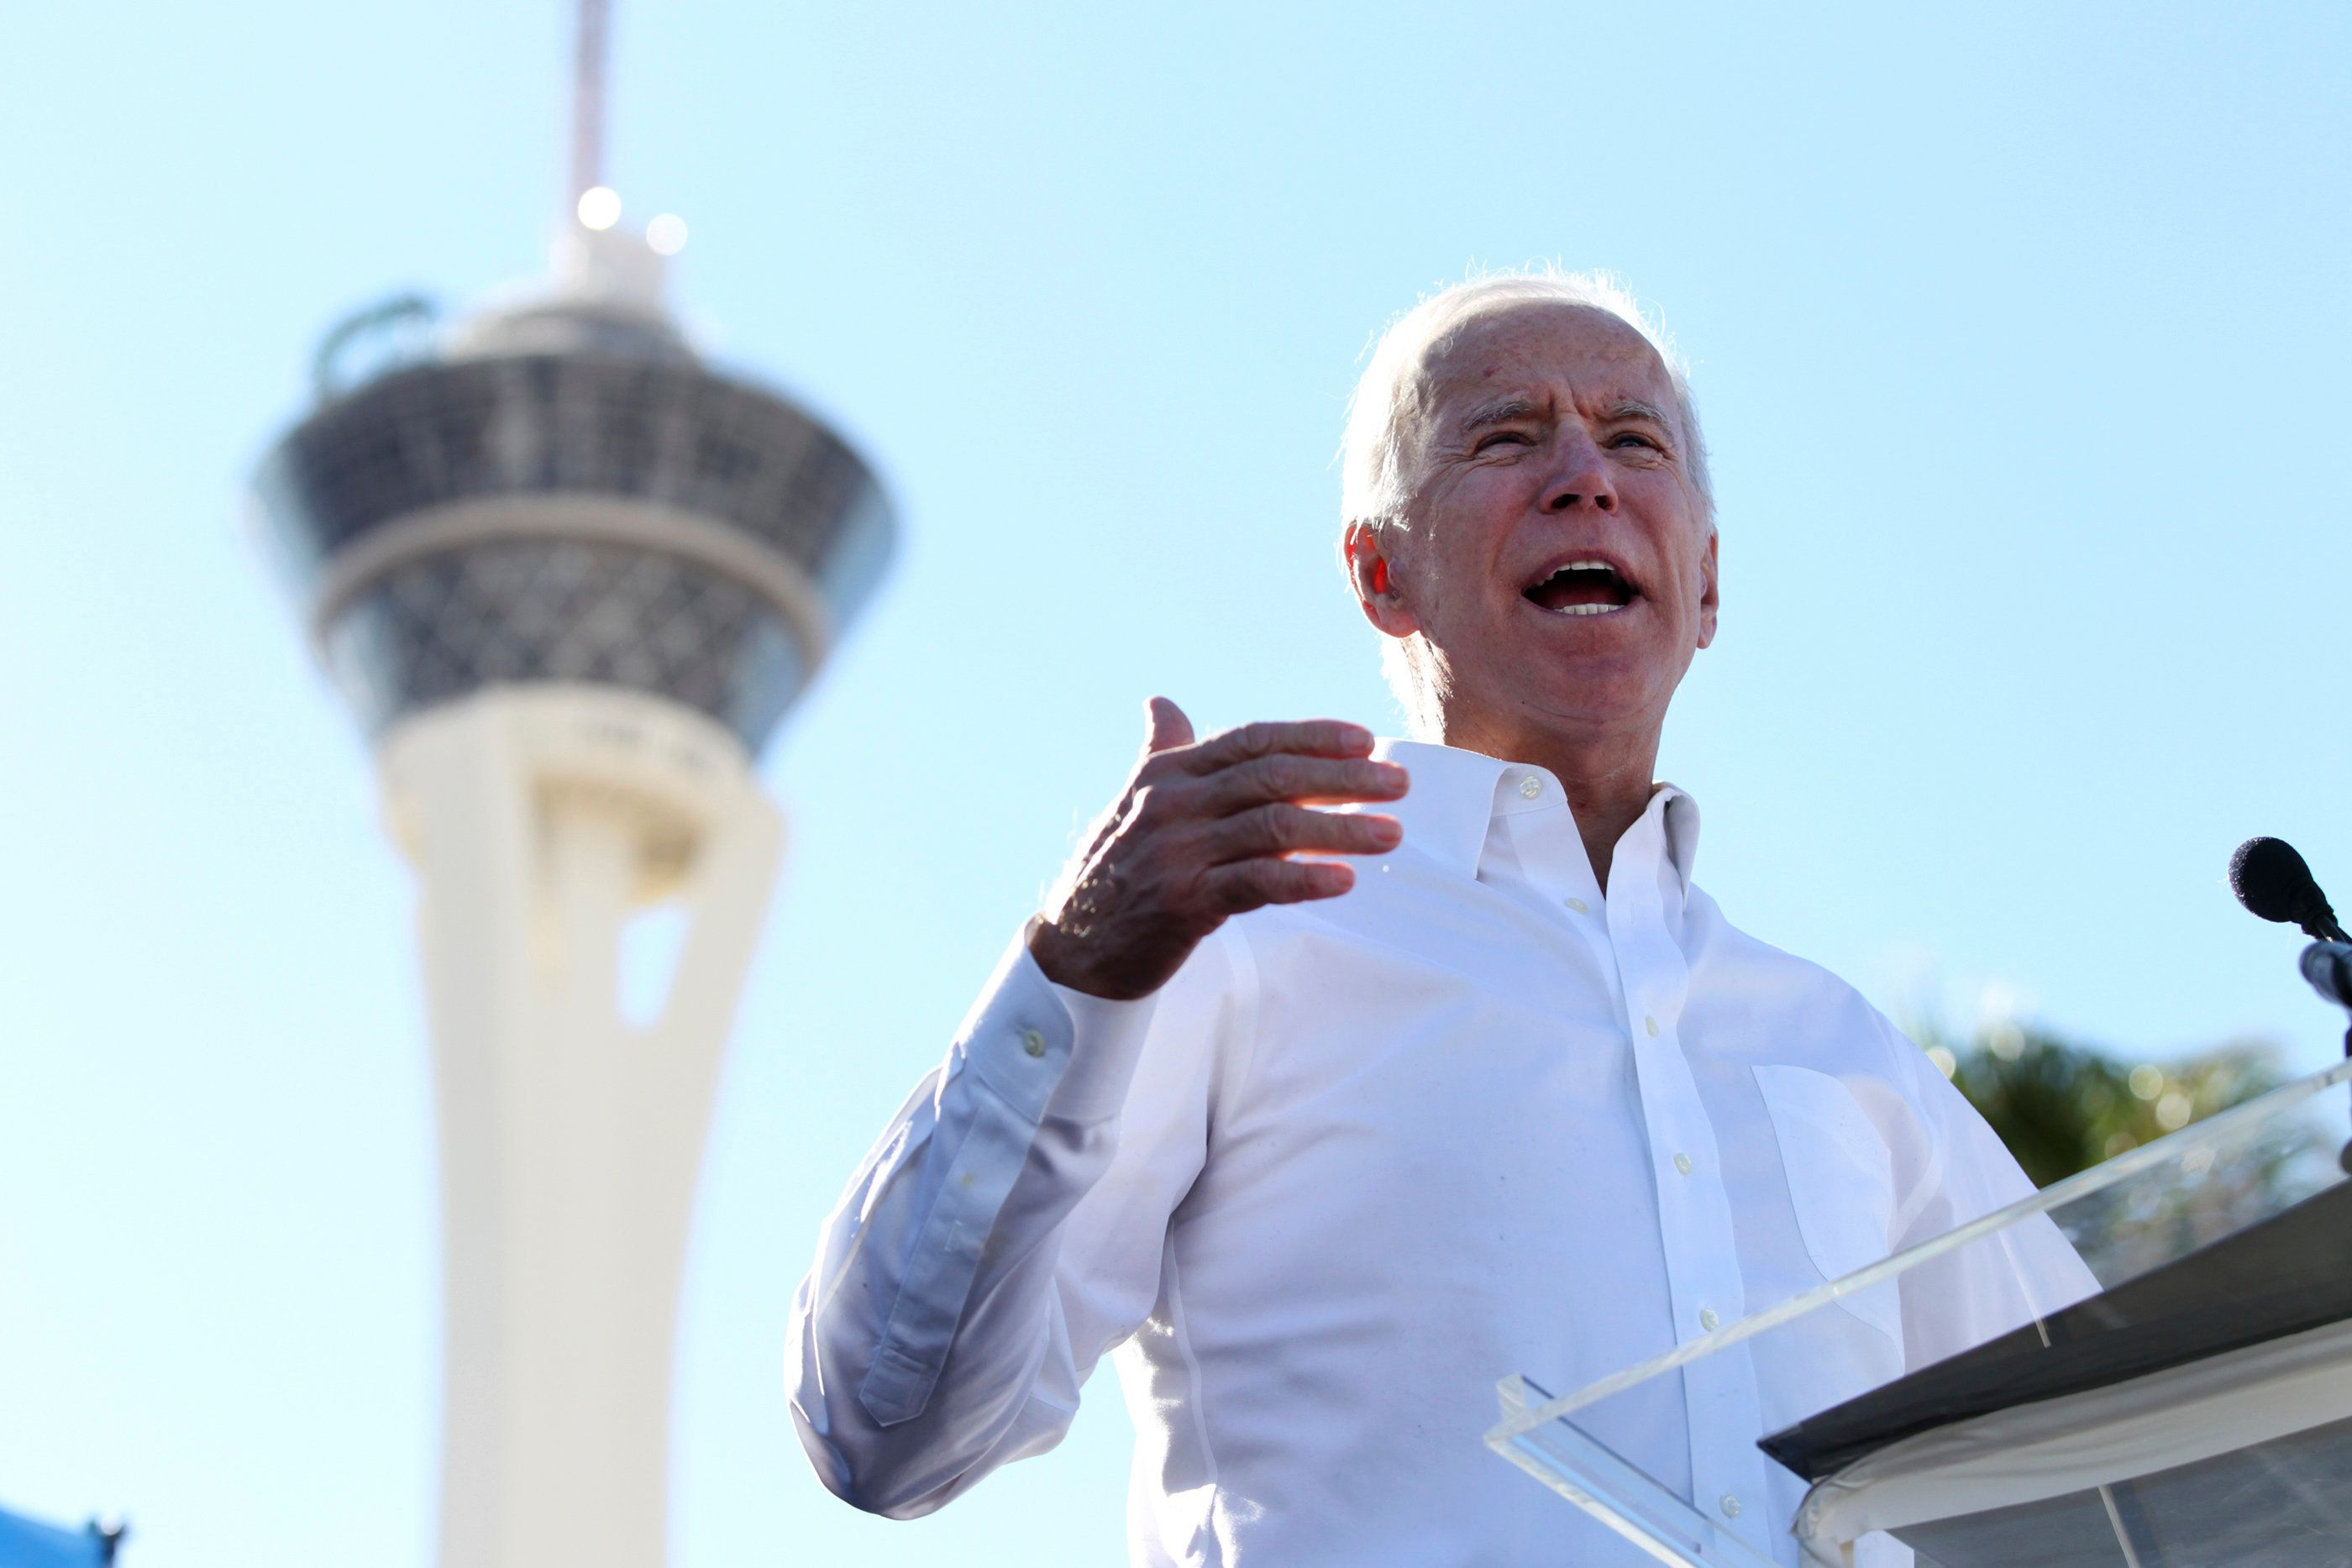 Former Vice President Joe Biden speaks to a crowd during a Nevada State Democratic Party rally to promote voting at the Culinary Workers Union Local 226 headquarters in Las Vegas, Saturday, Oct. 20, 2018. (Erik Verduzco/Las Vegas Review-Journal via AP)